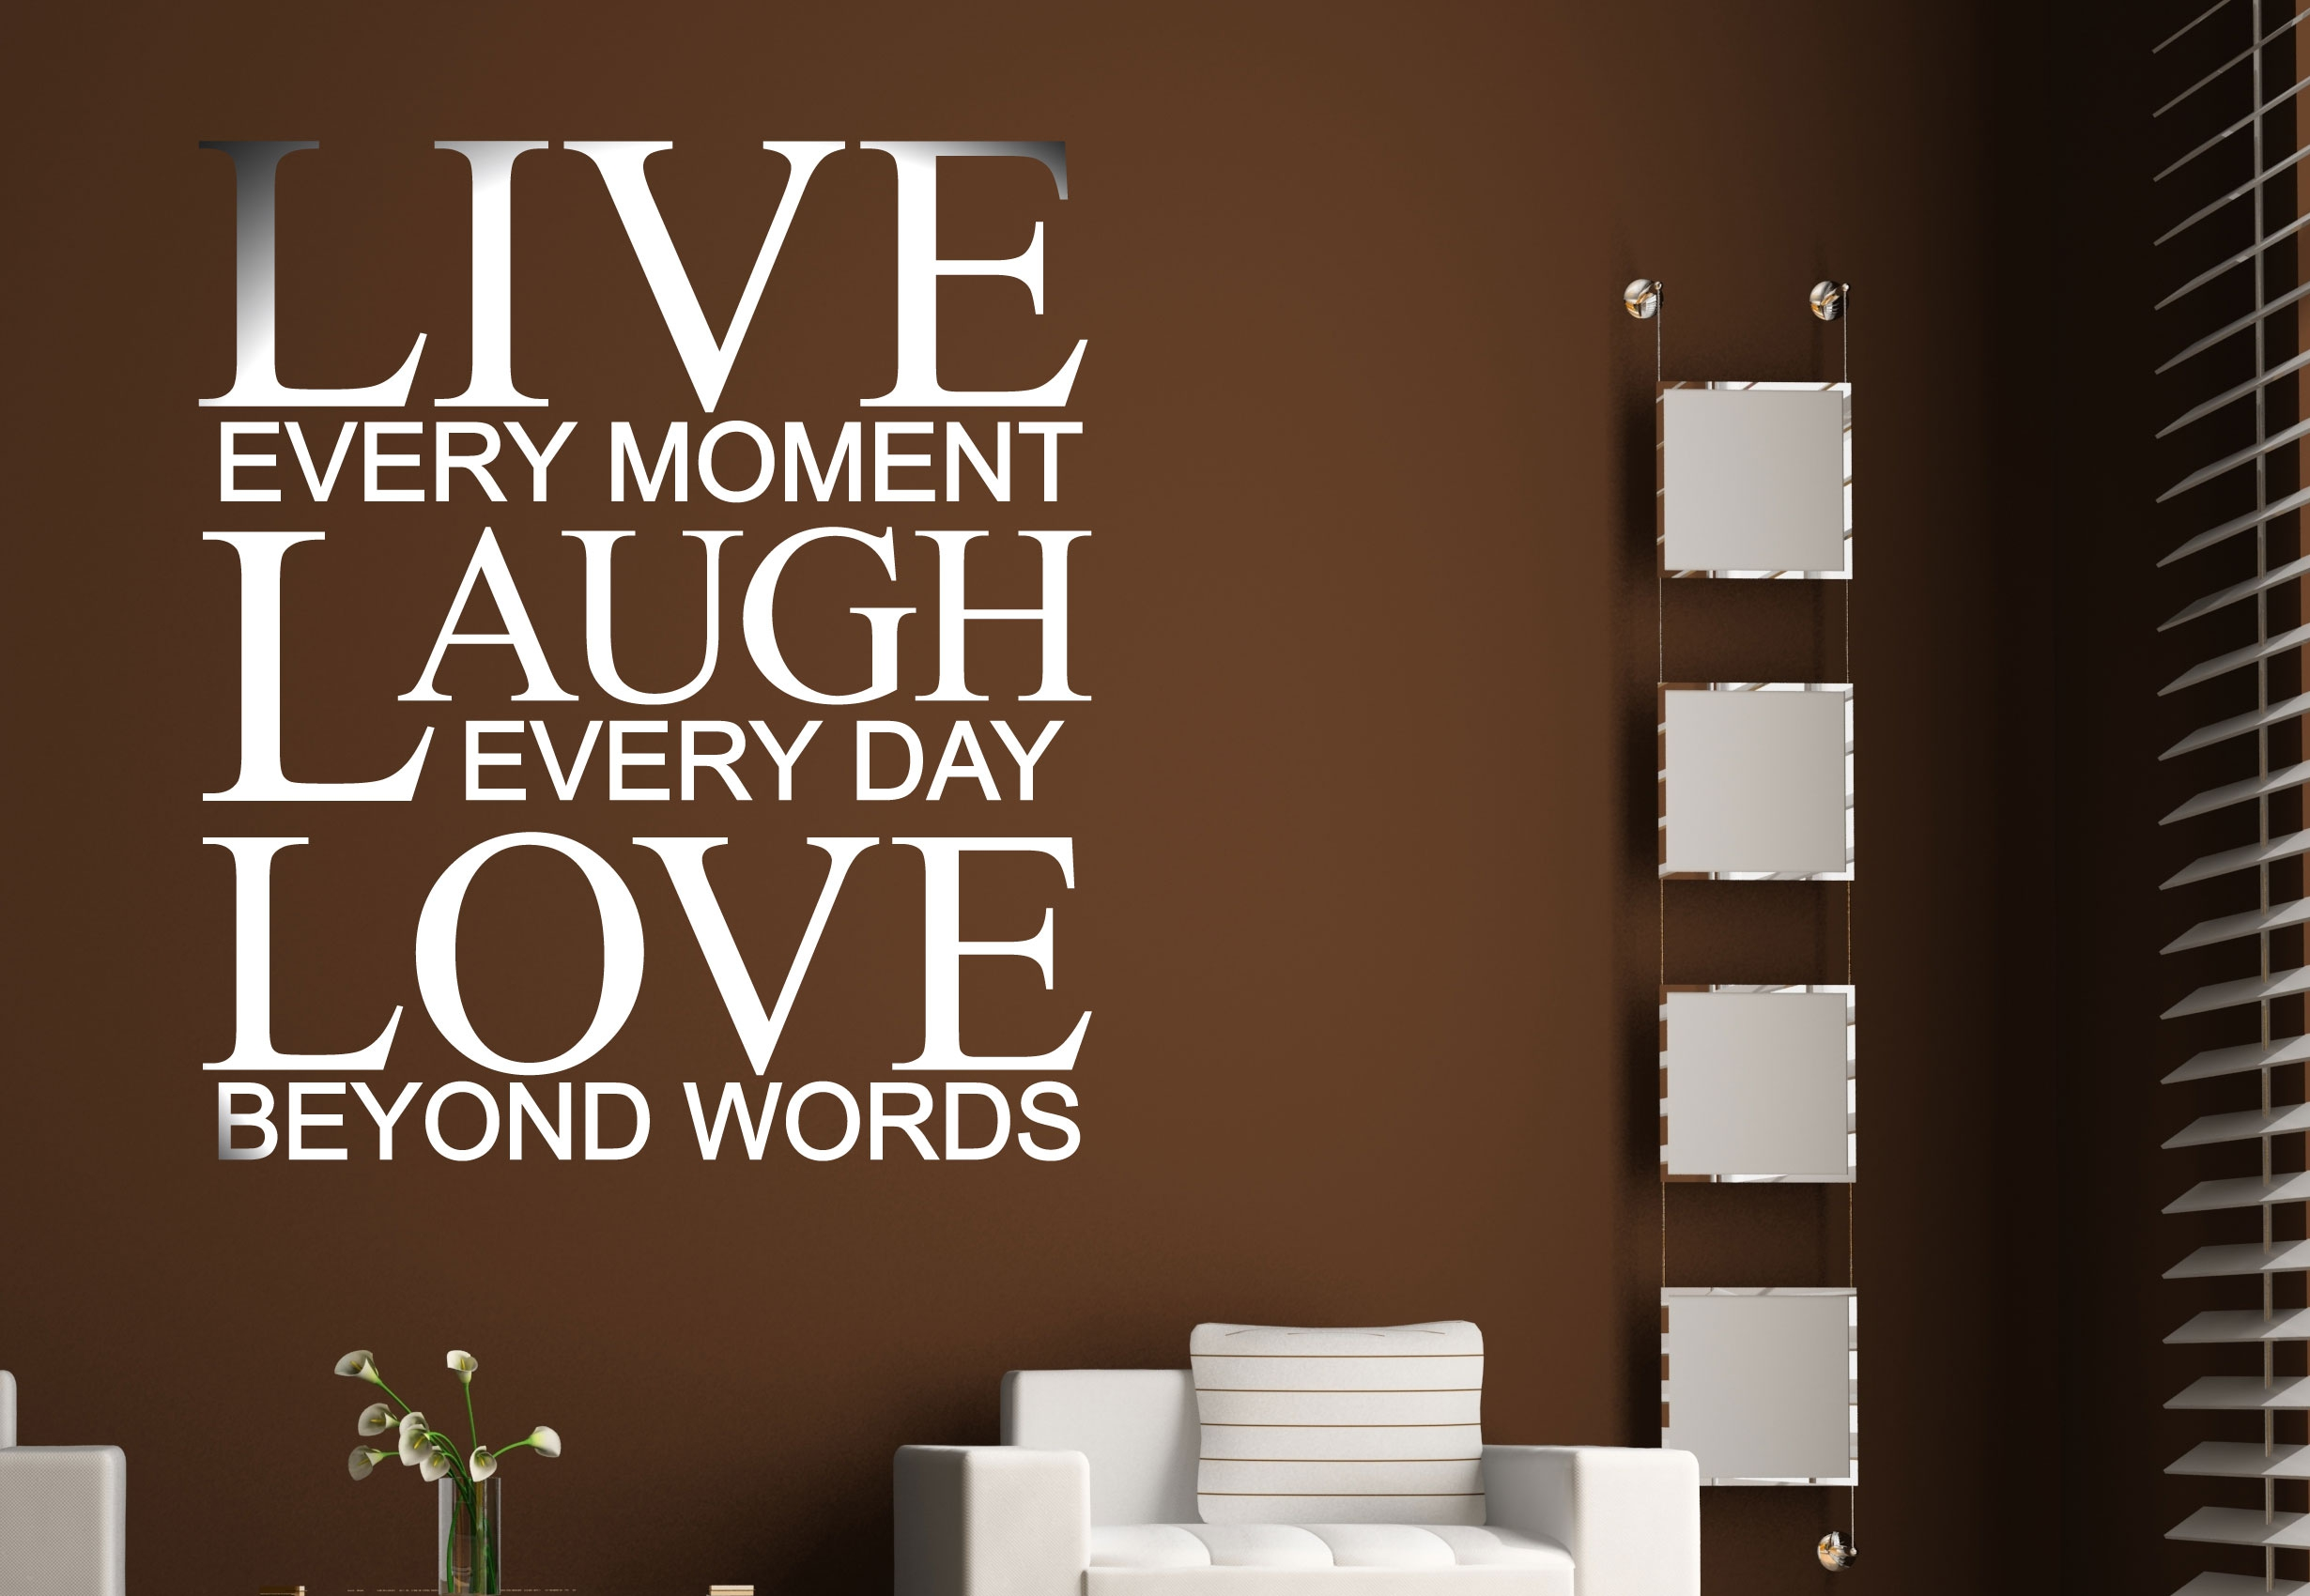 Love Quotes Wall Decals Live Every Moment Laugh Every Day Love Quote Wall Decal Vinyl